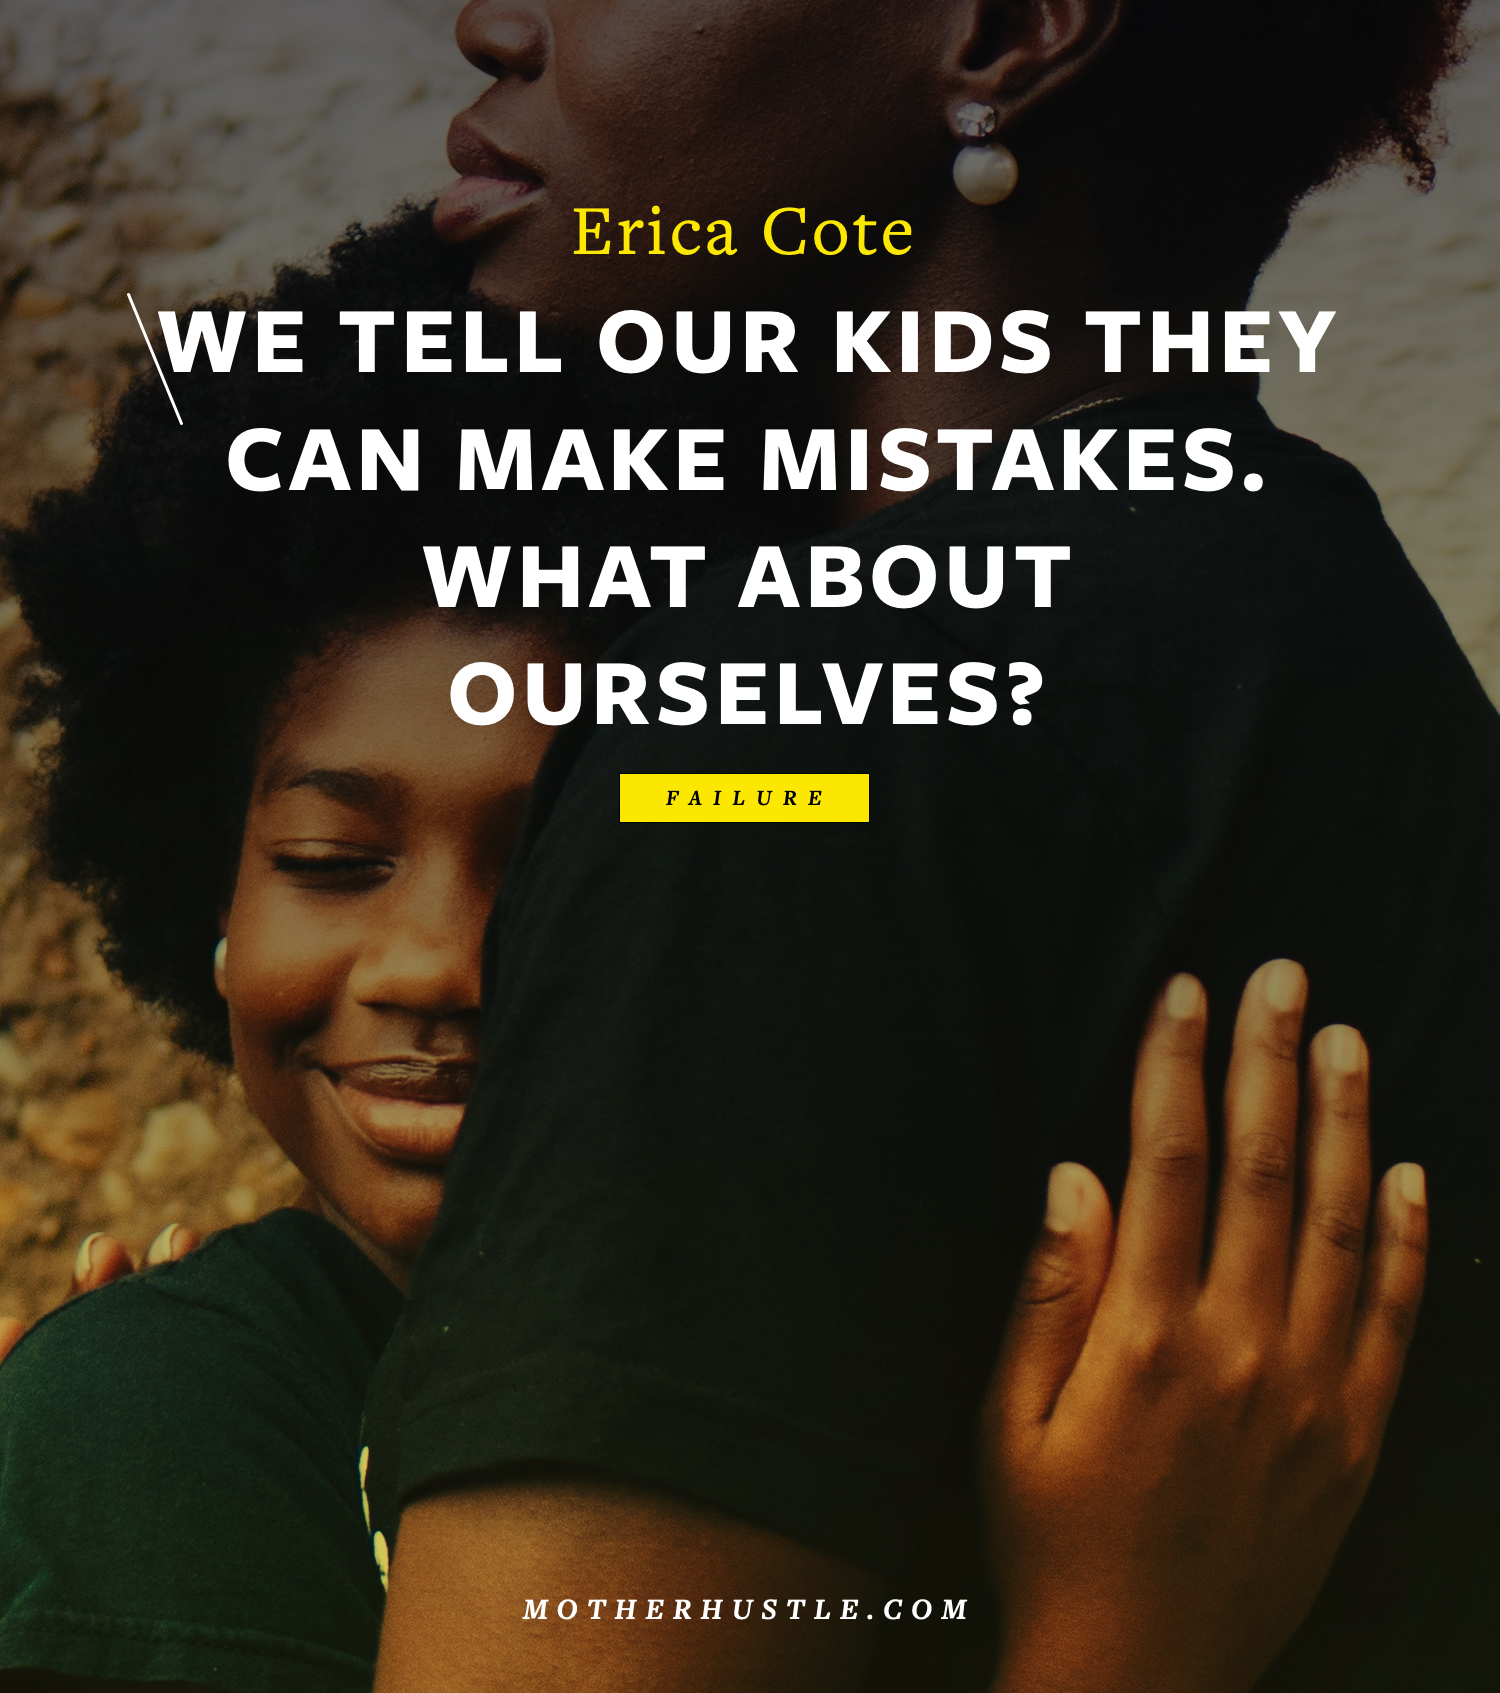 We Tell Our Kids They Can Make Mistakes. What About Ourselves? - BY Erica Cote for MotherHustle